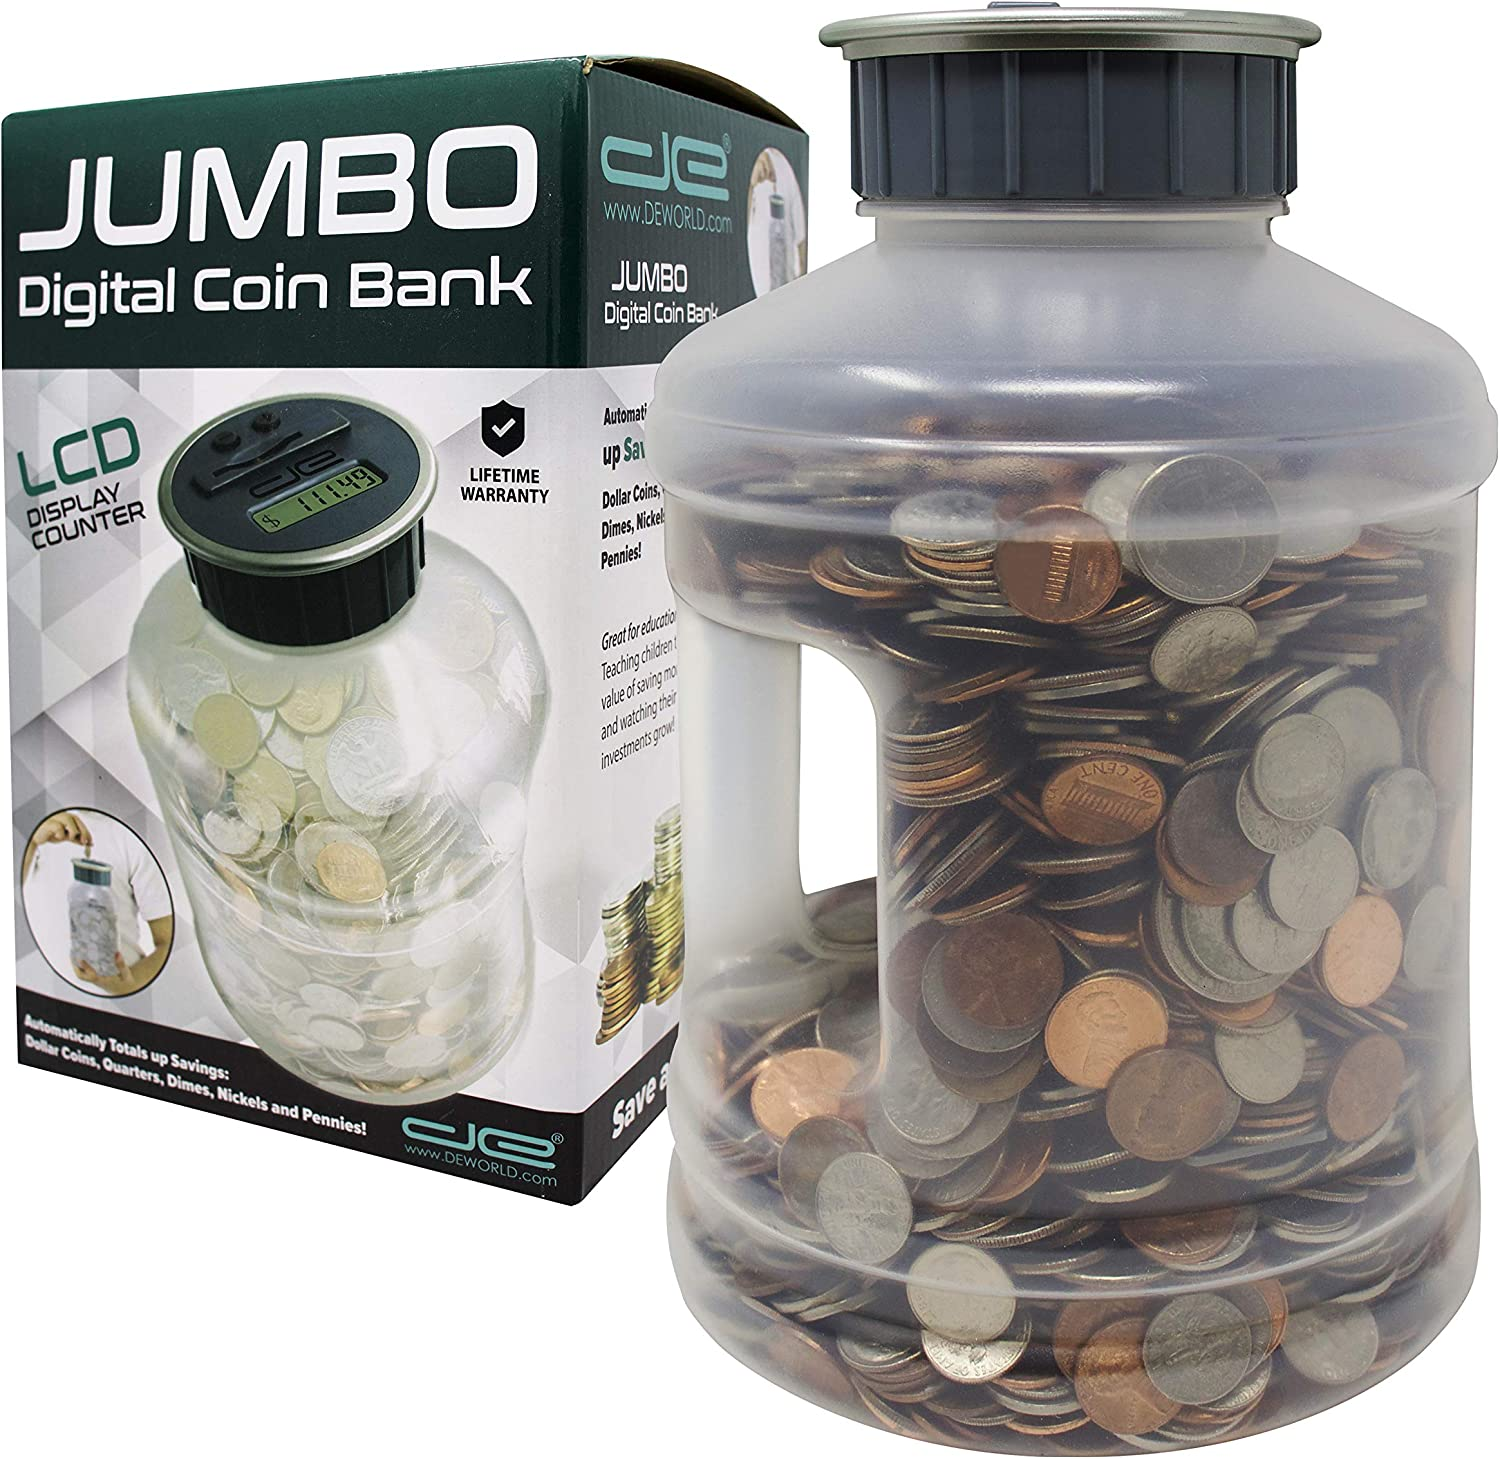 Jumbo Digital Coin Counter Bank - Extra Large Savings Jar for Pennies Nickles Dimes Quarters Half Dollar and Dollar Coins | Clear Jar w/LCD Display